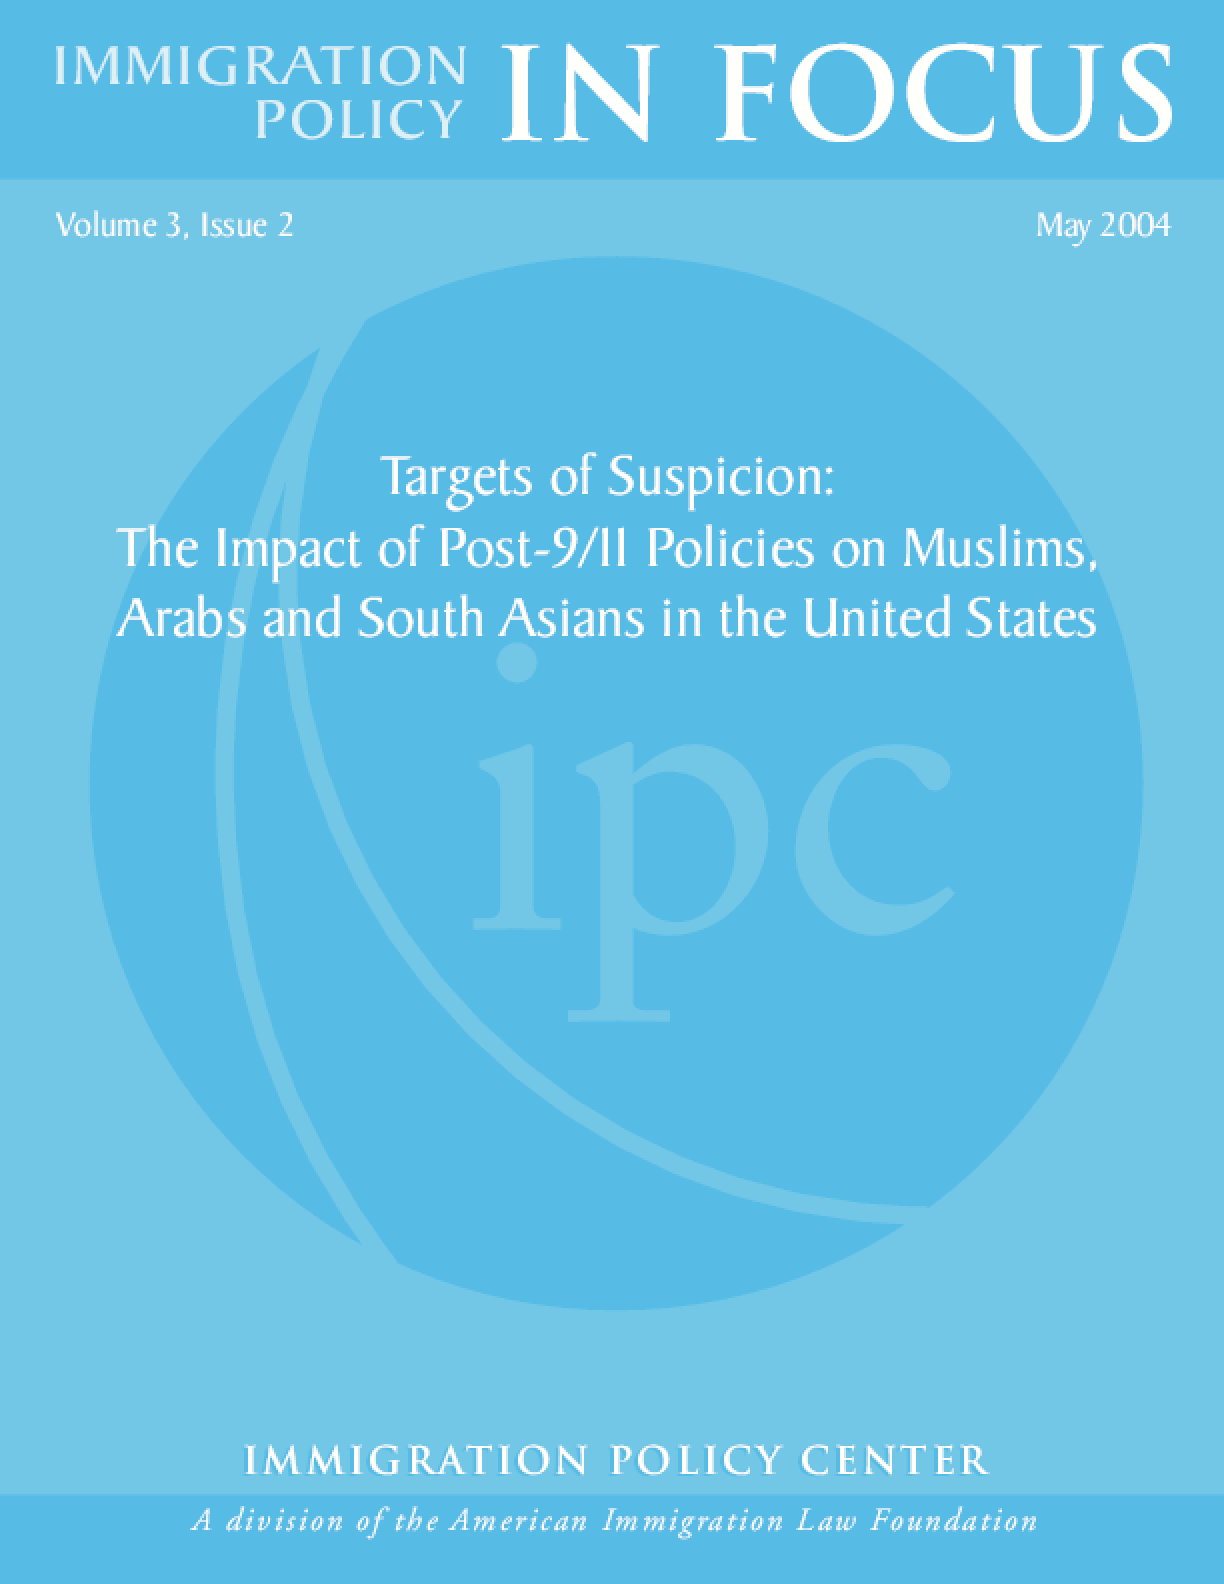 Targets of Suspicion: The Impact of Post-9/11 Policies on Muslims, Arabs and South Asians in the US